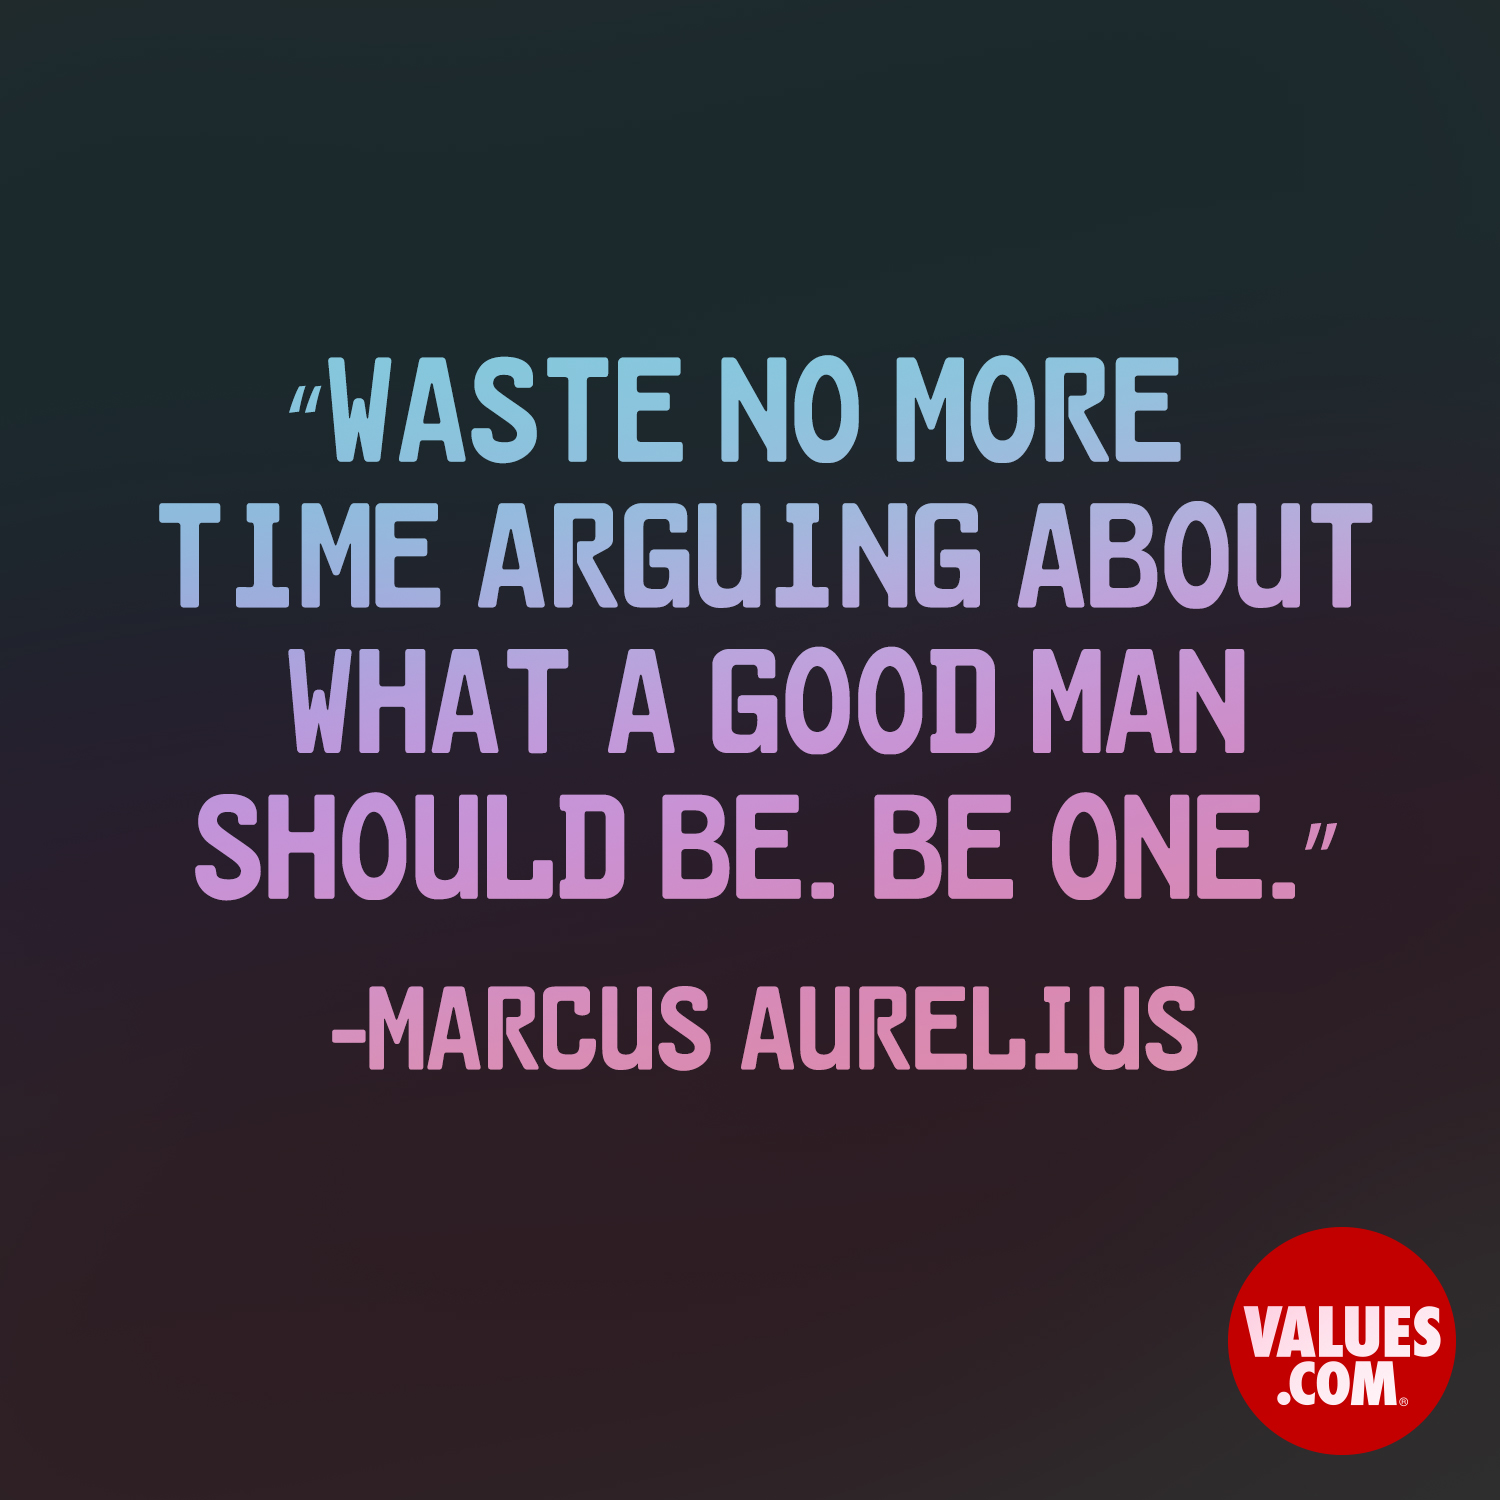 Waste no more time arguing about what a good man should be. Be one. —Marcus Aurelius